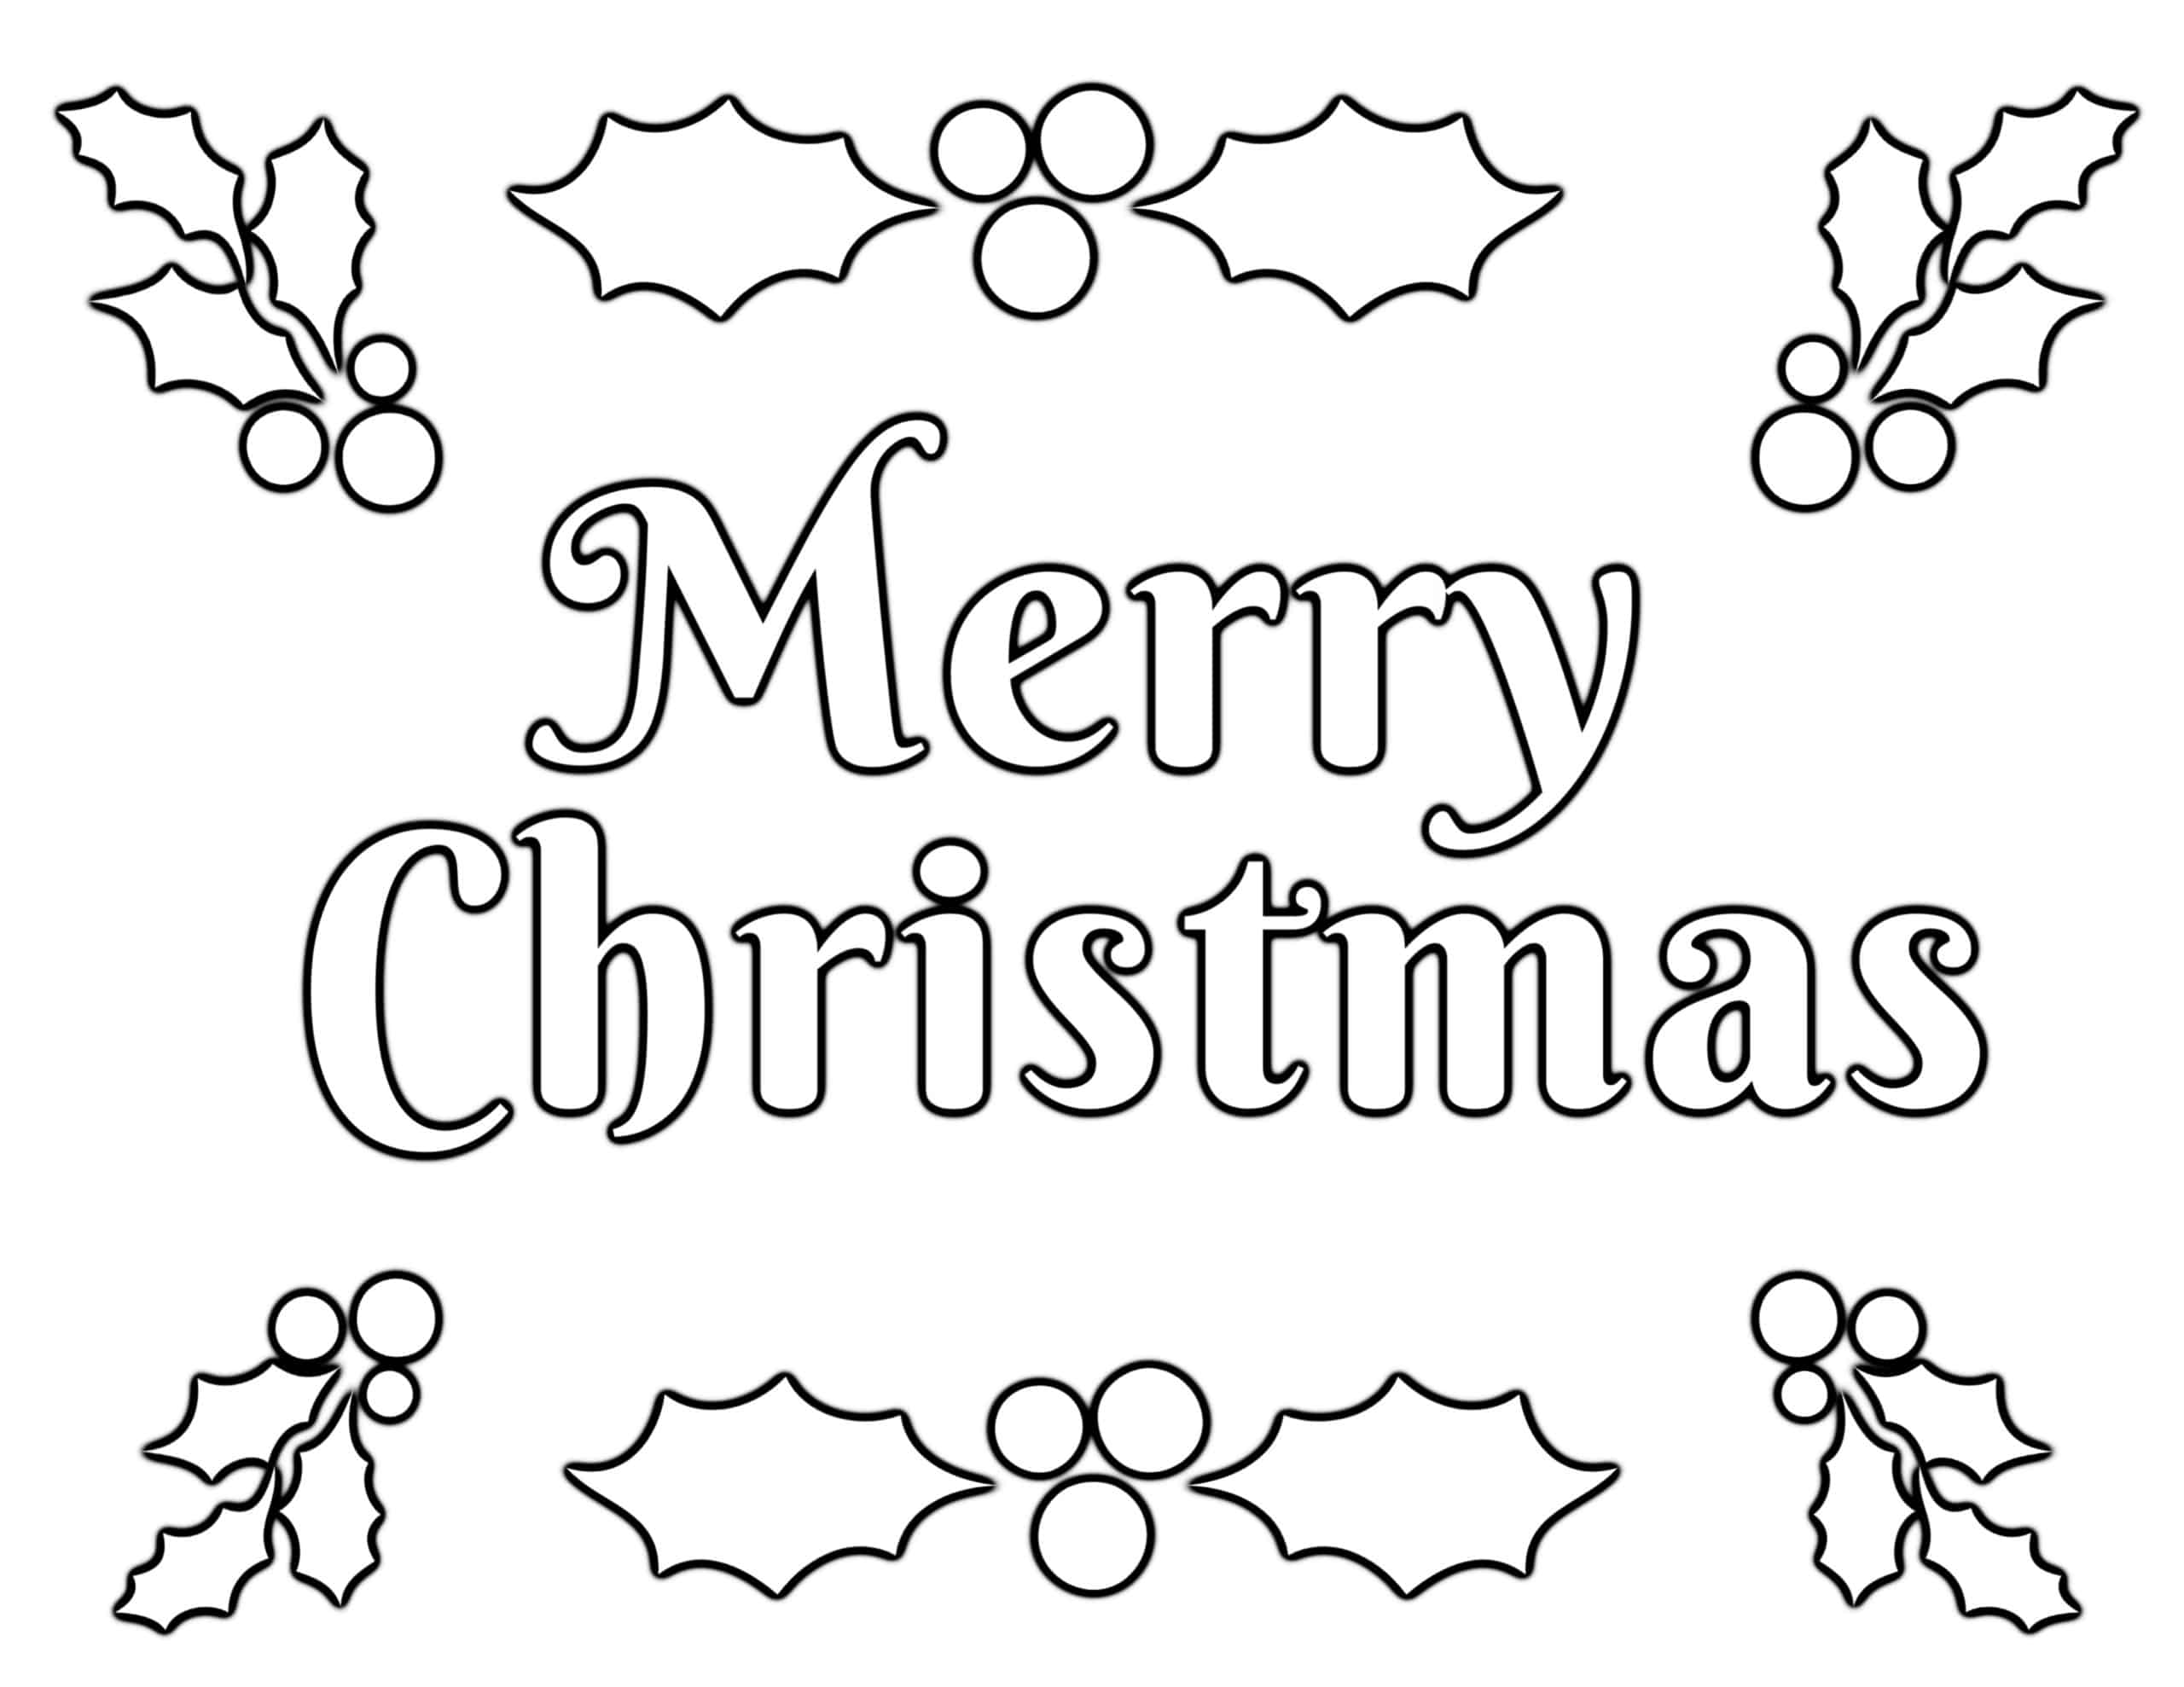 Christmas Coloring Pages for Kids (100% FREE) Easy ...